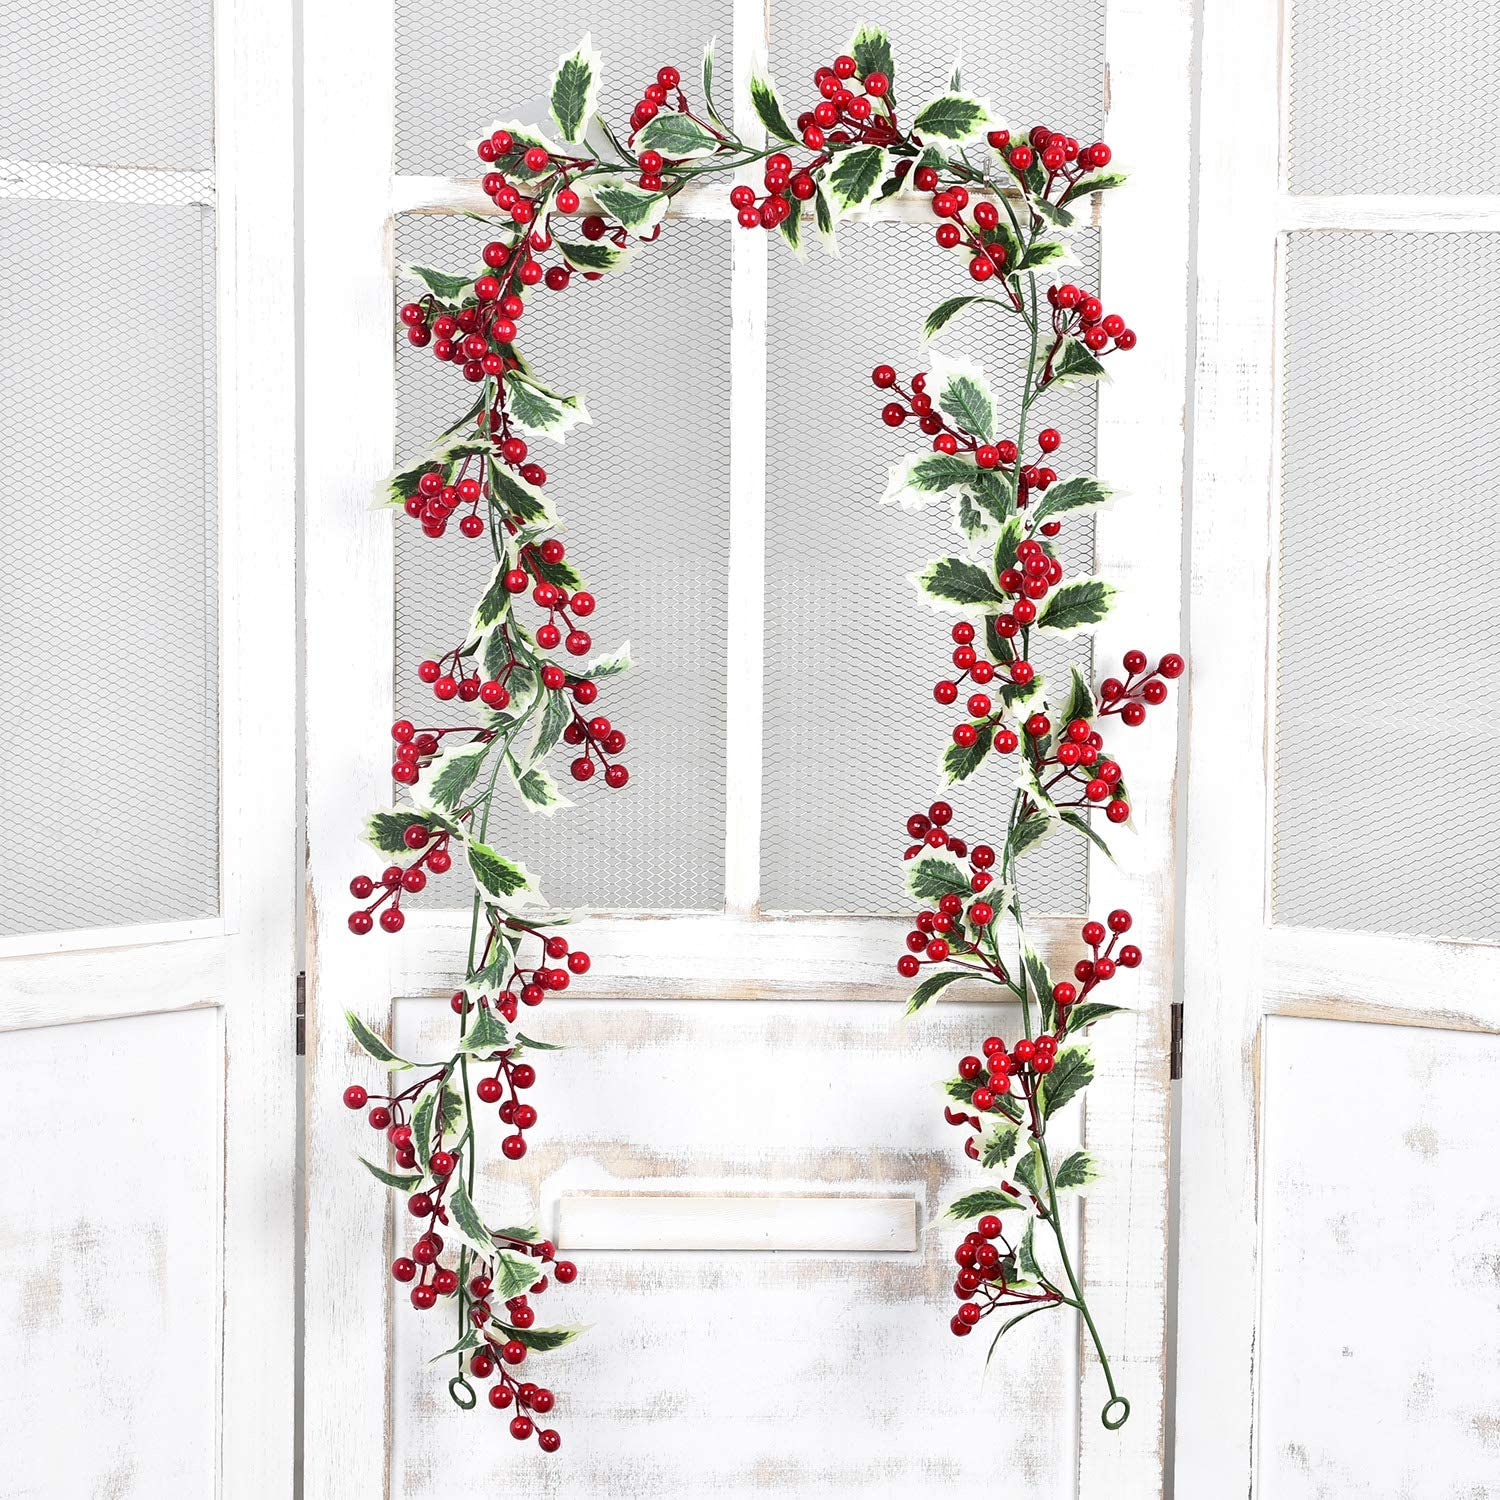 DearHouse 6Ft Red Berry Christmas Garland with Green Leaves, Flexible Artificial Berry Garland for Indoor Outdoor Home Fireplace Decoration for Winter Christmas Holiday New Year Decor